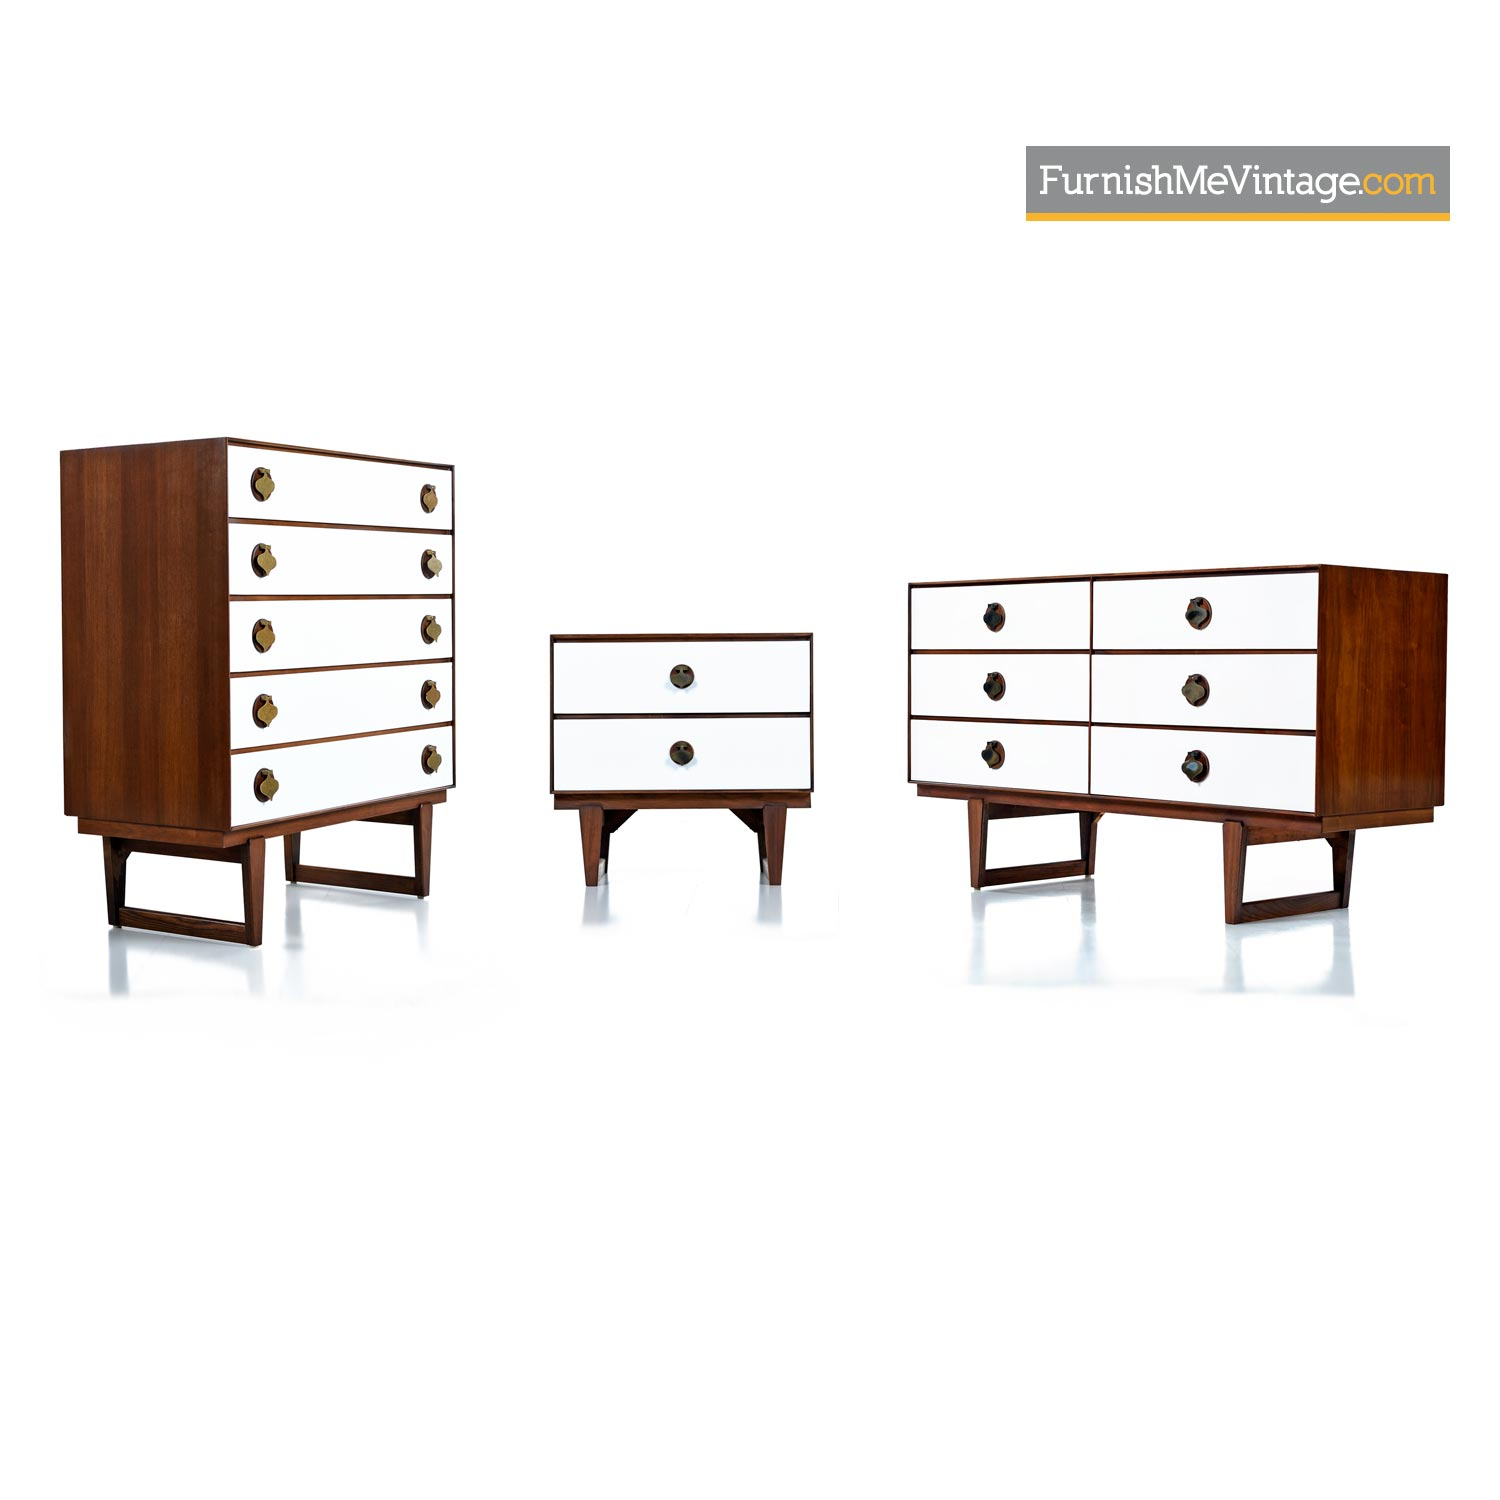 Mid Century Modern Bedroom Set By Stanley With Brass Spade Pulls,Small Back Porch Ideas